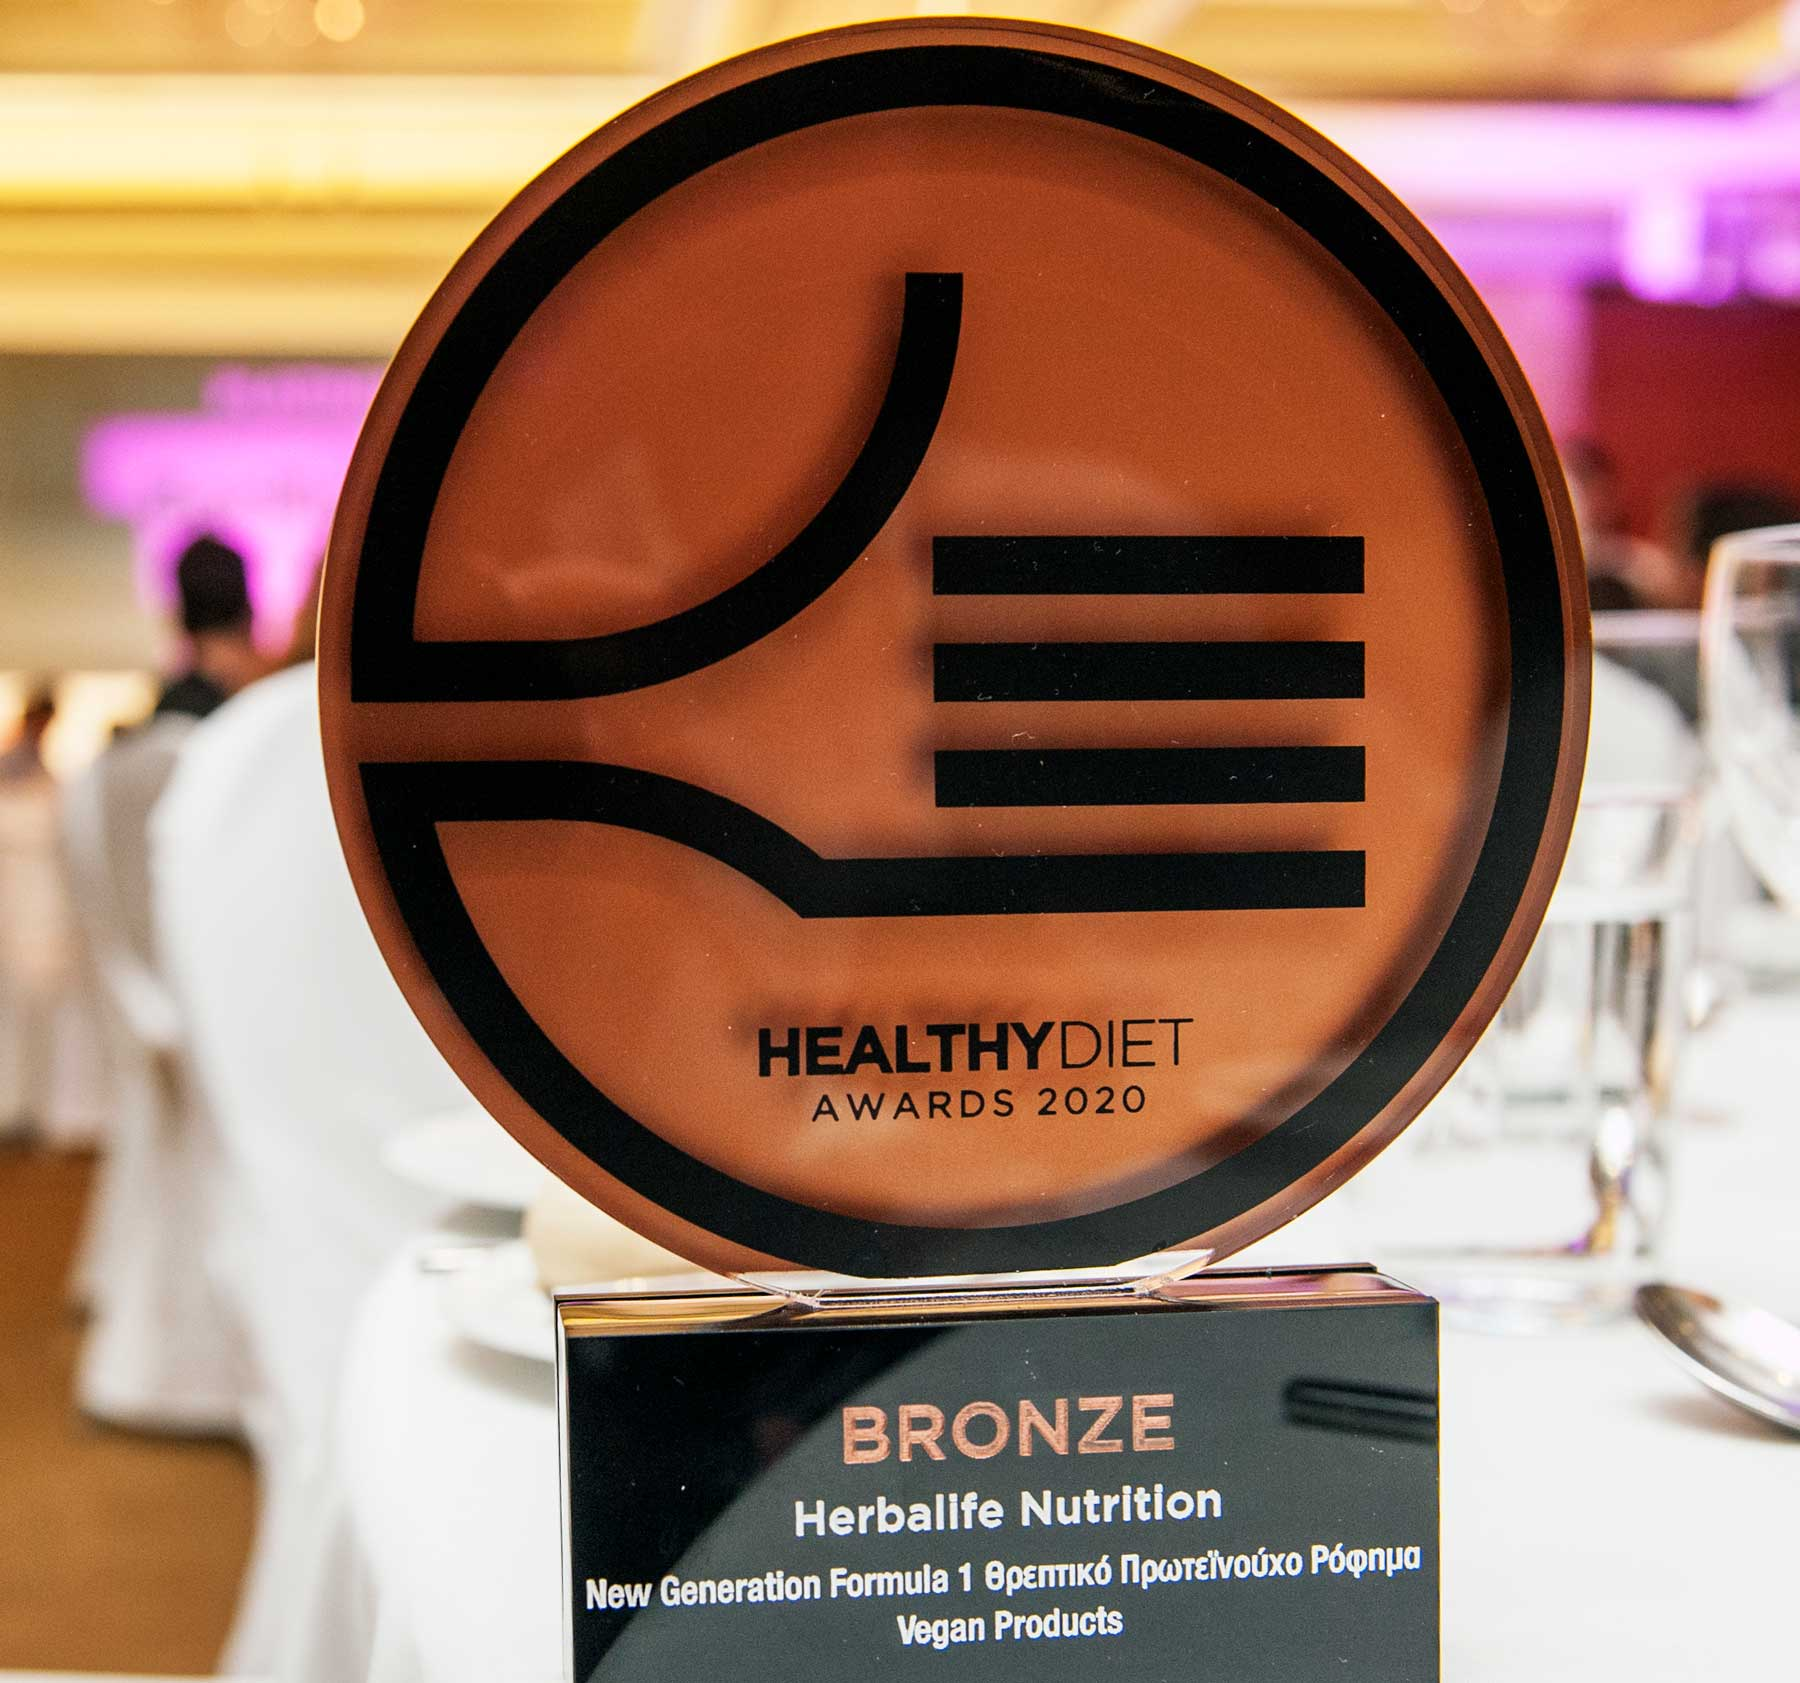 Herbalife Nutrition Healthy Diet Awards